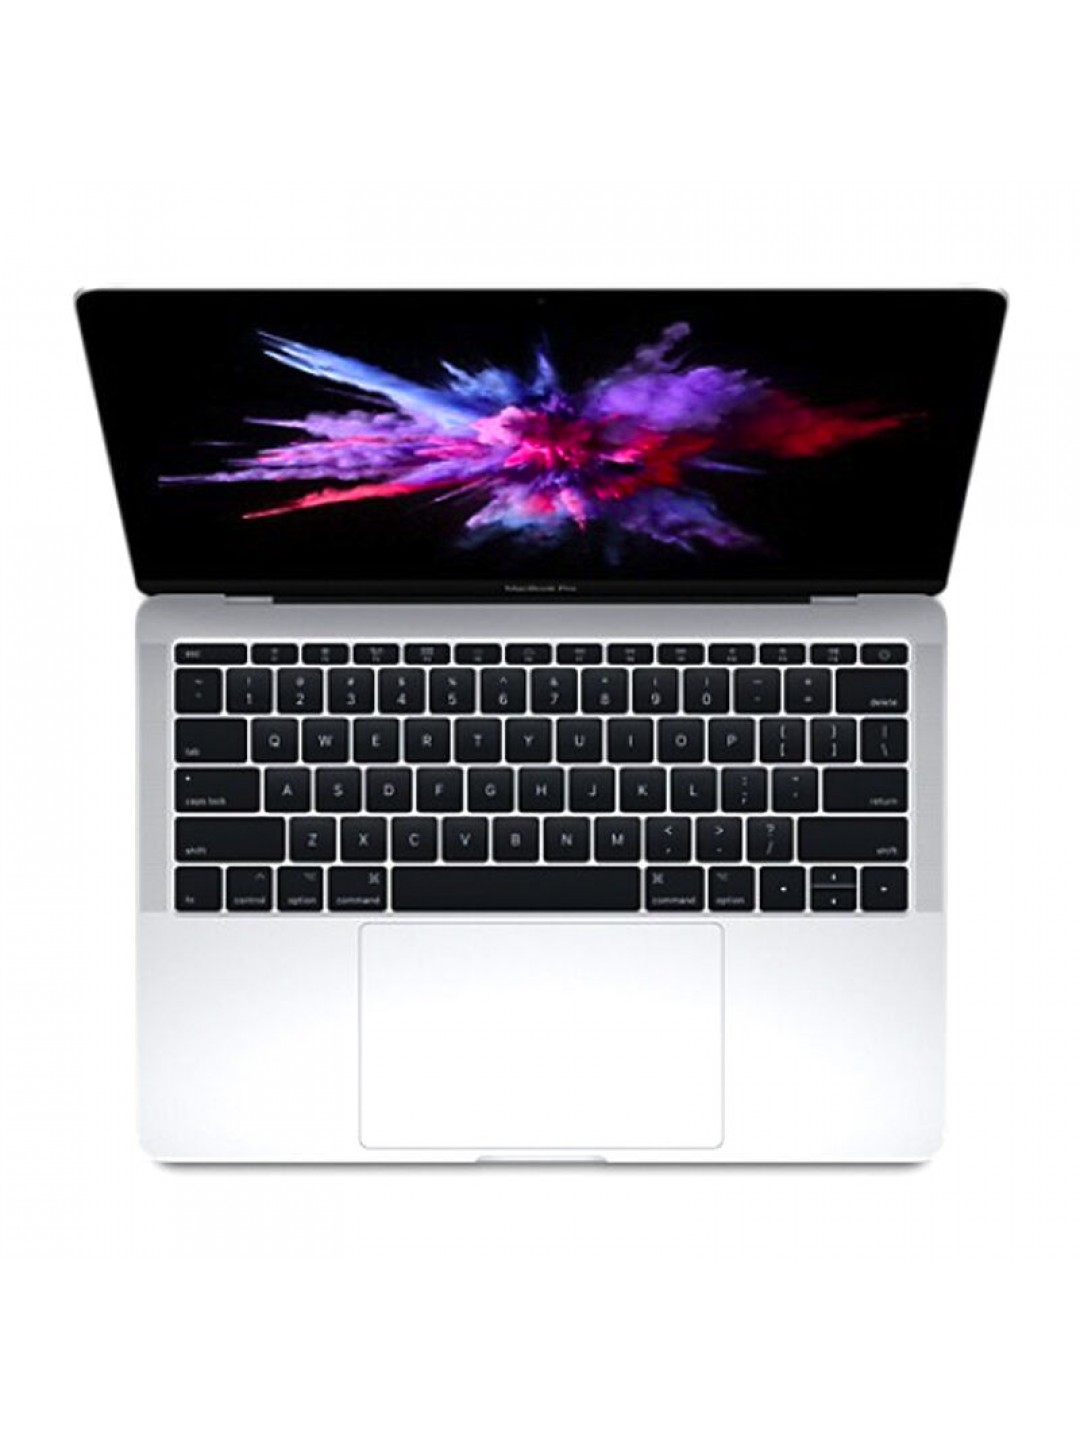 Laptop Apple Macbook Pro 2017 MPXR2 13 inch Non Touch Bar/2.3Ghz Dual i5/8GB/128GB/Intel Iris Graphics 640